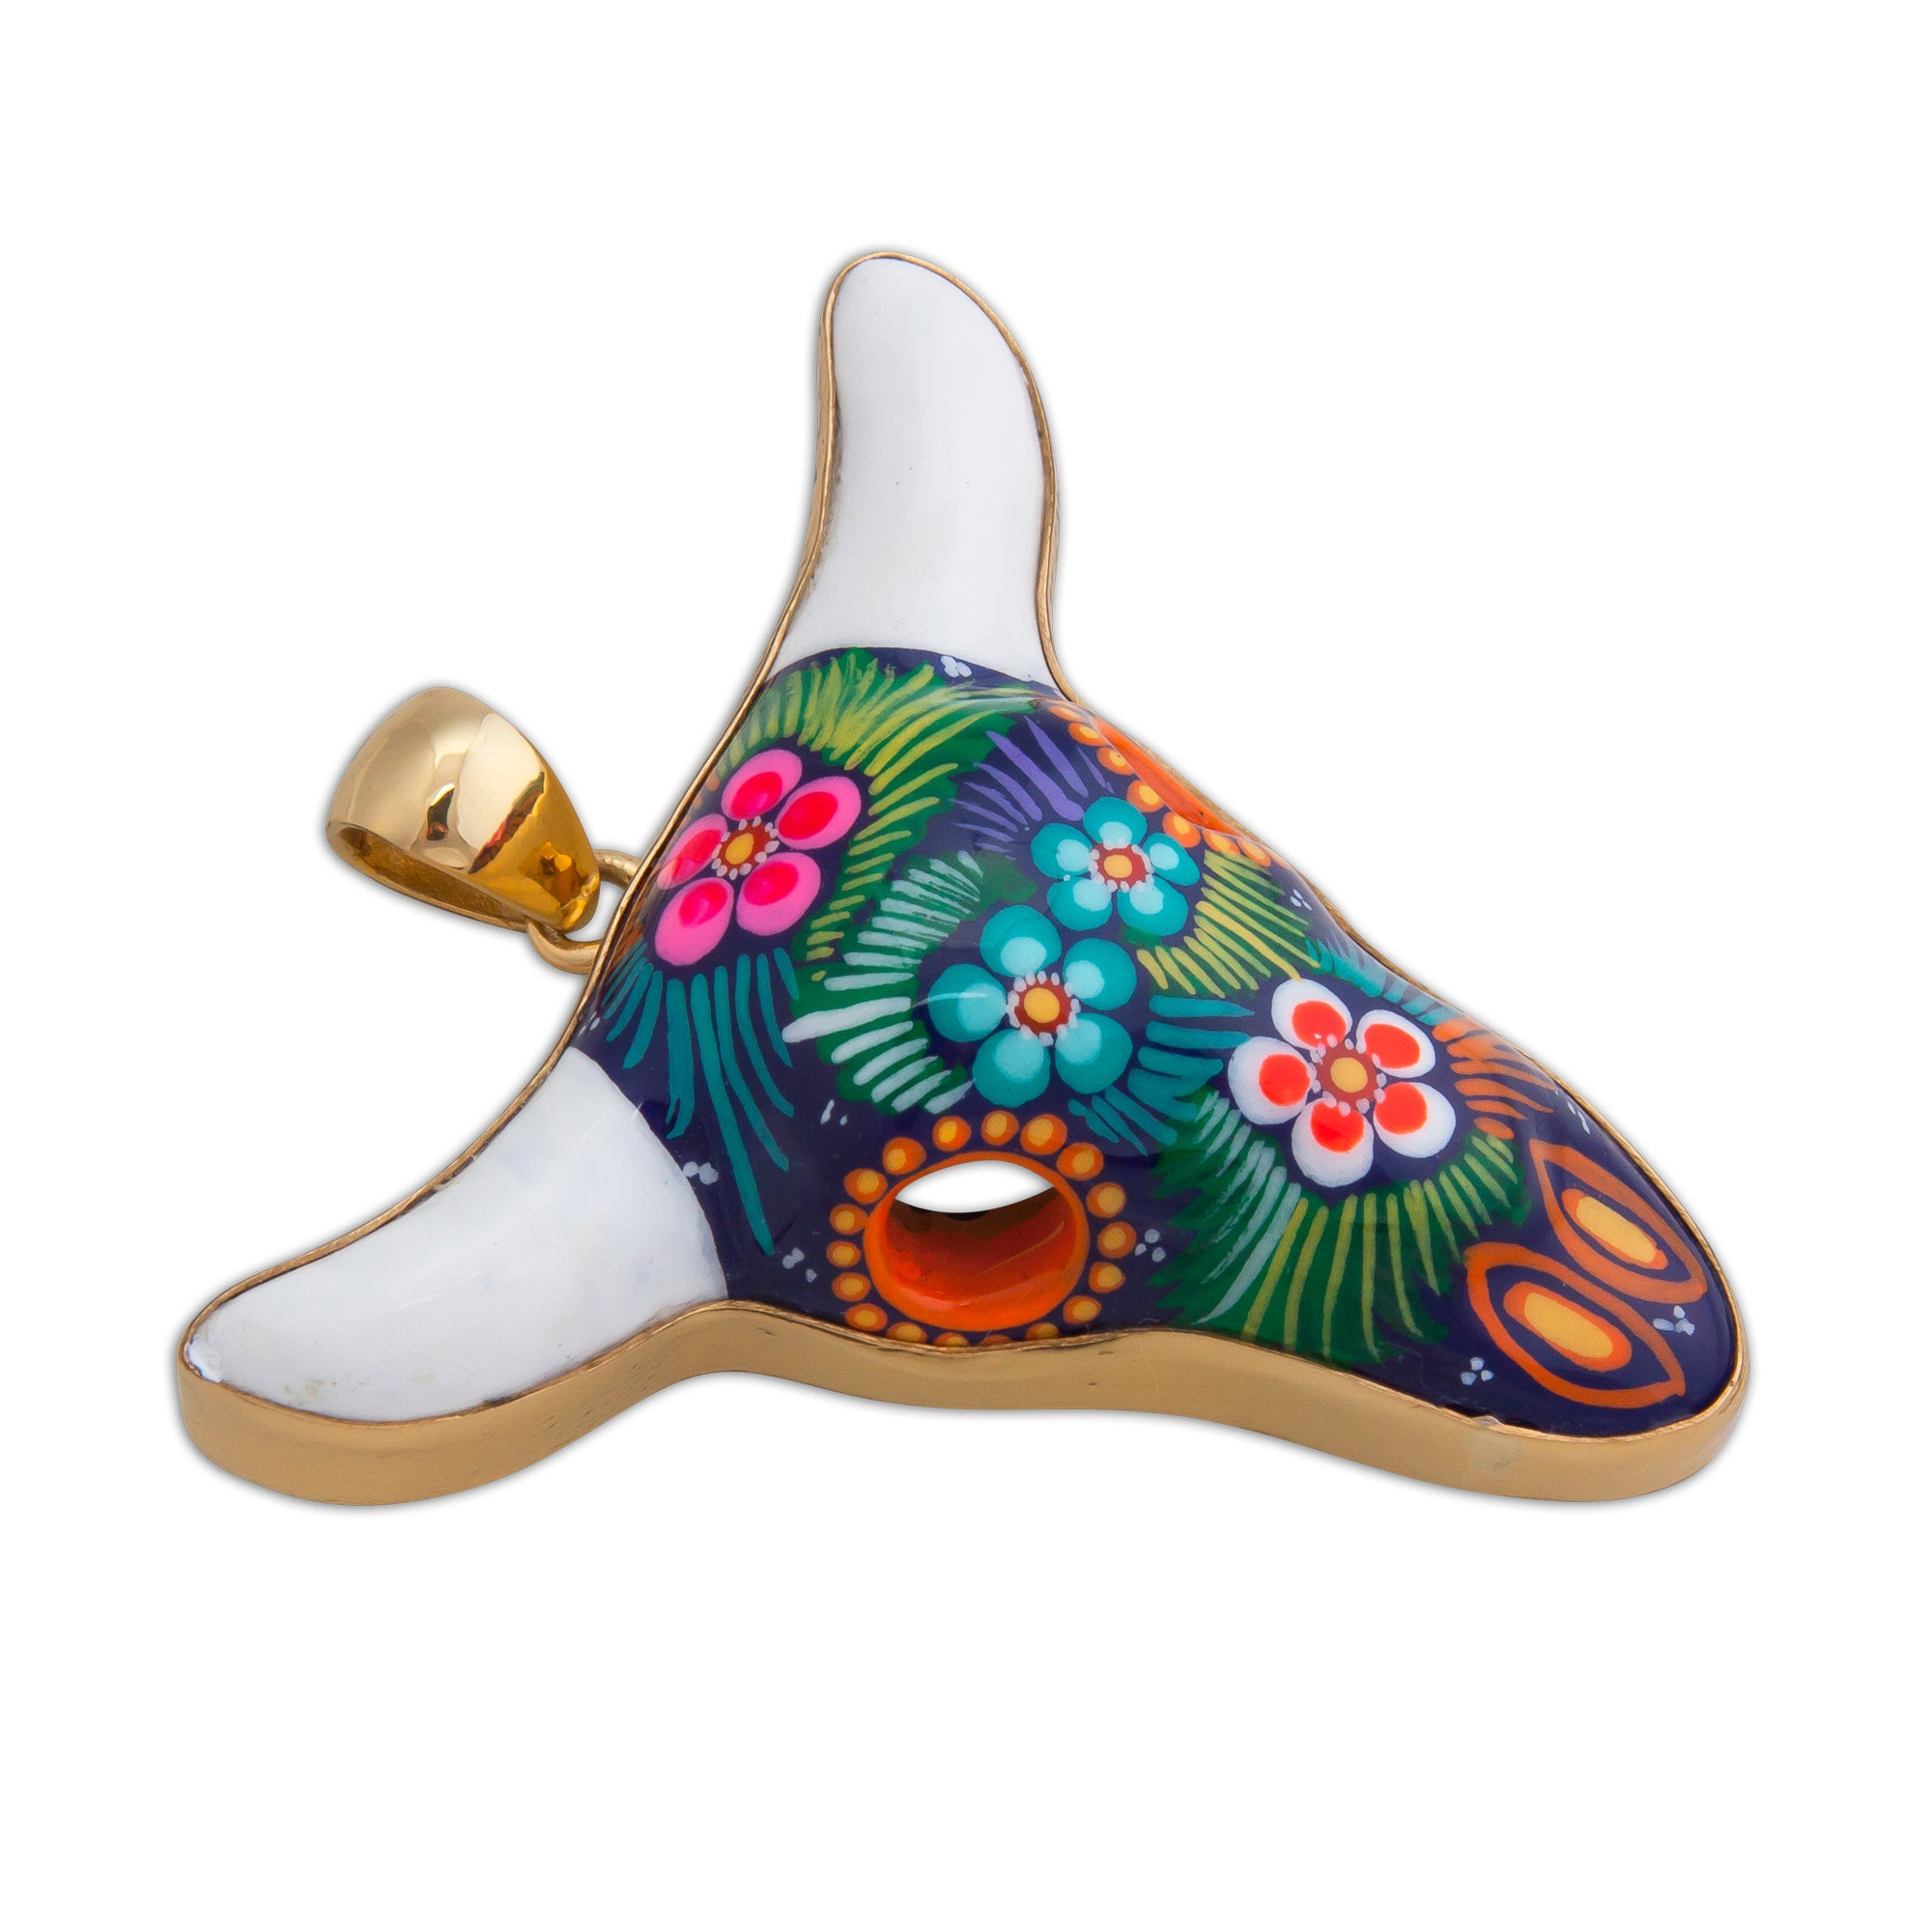 Alchemia Hand Painted Ceramic Cow Skull Pendant - Taxco